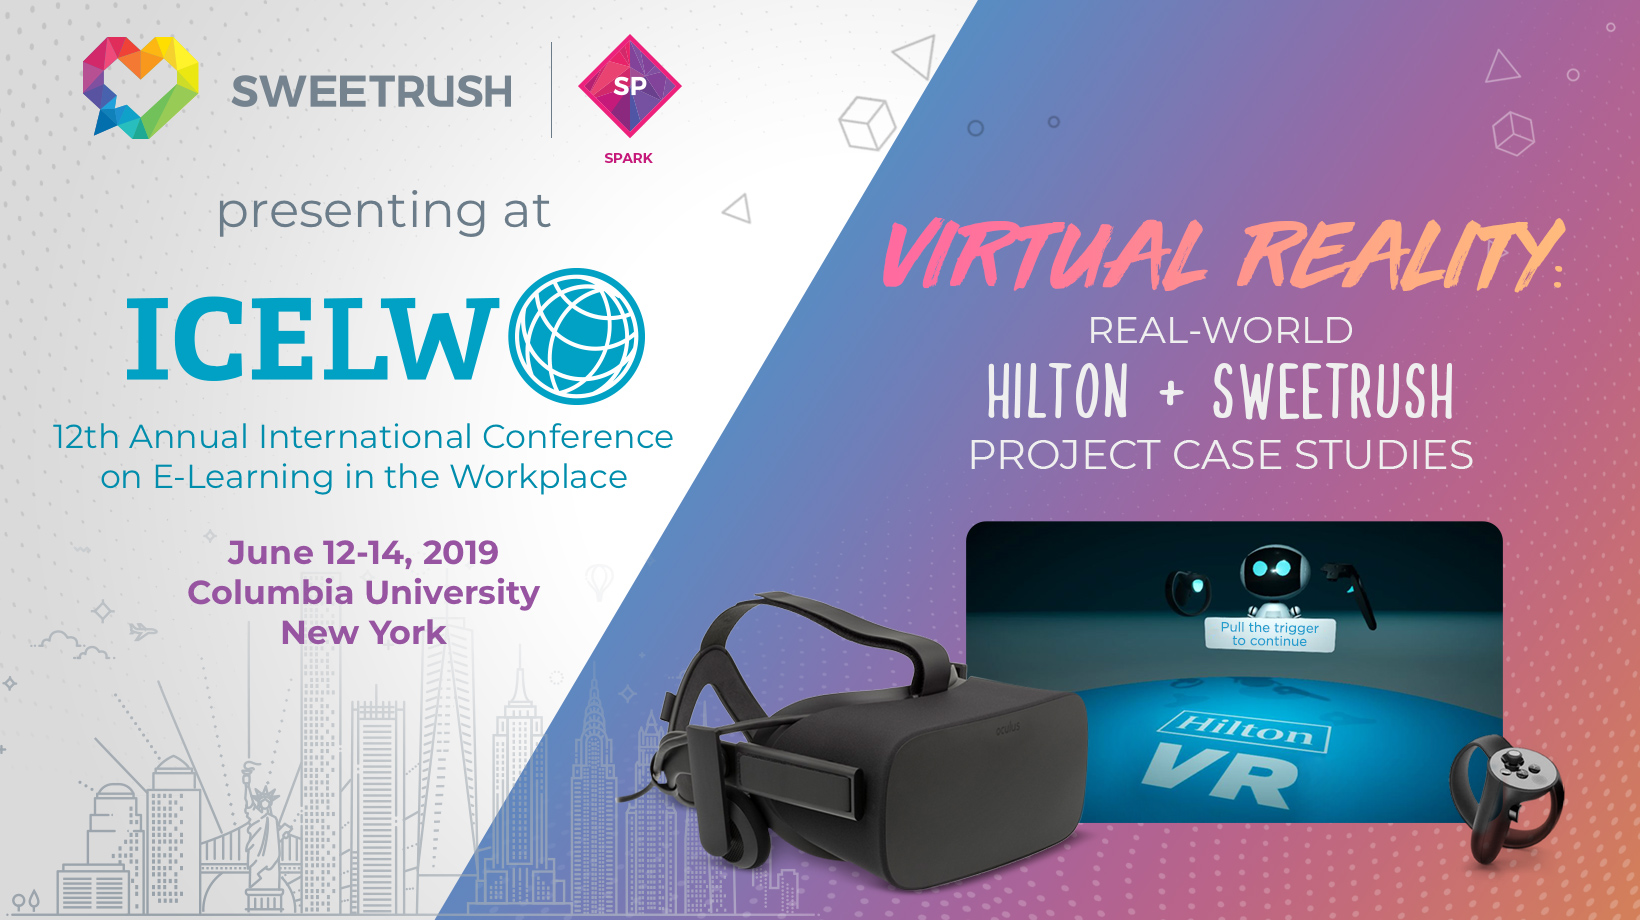 SweetRush to Present VR Case Studies with Hilton at eLearning Conference ICELW 2019